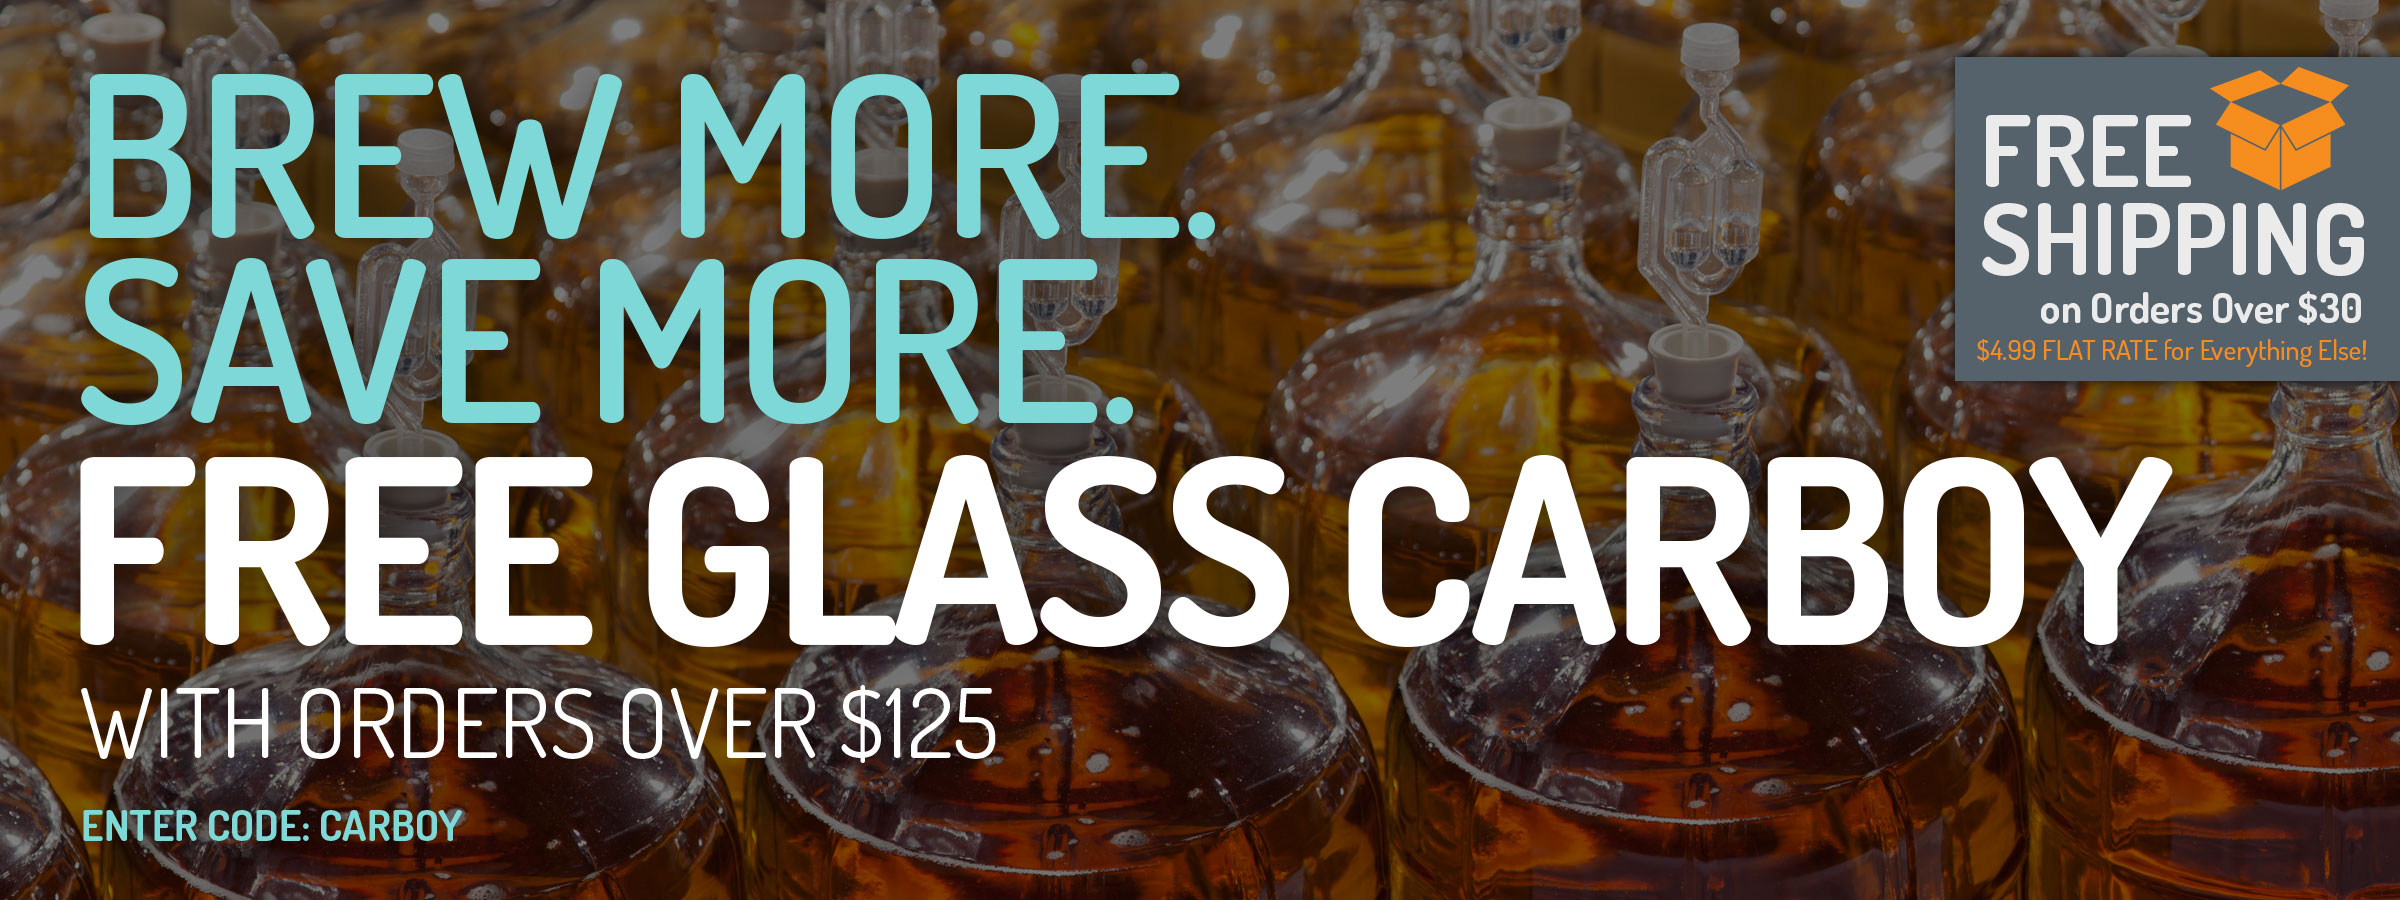 Free Glass Carboy With Orders Over $125